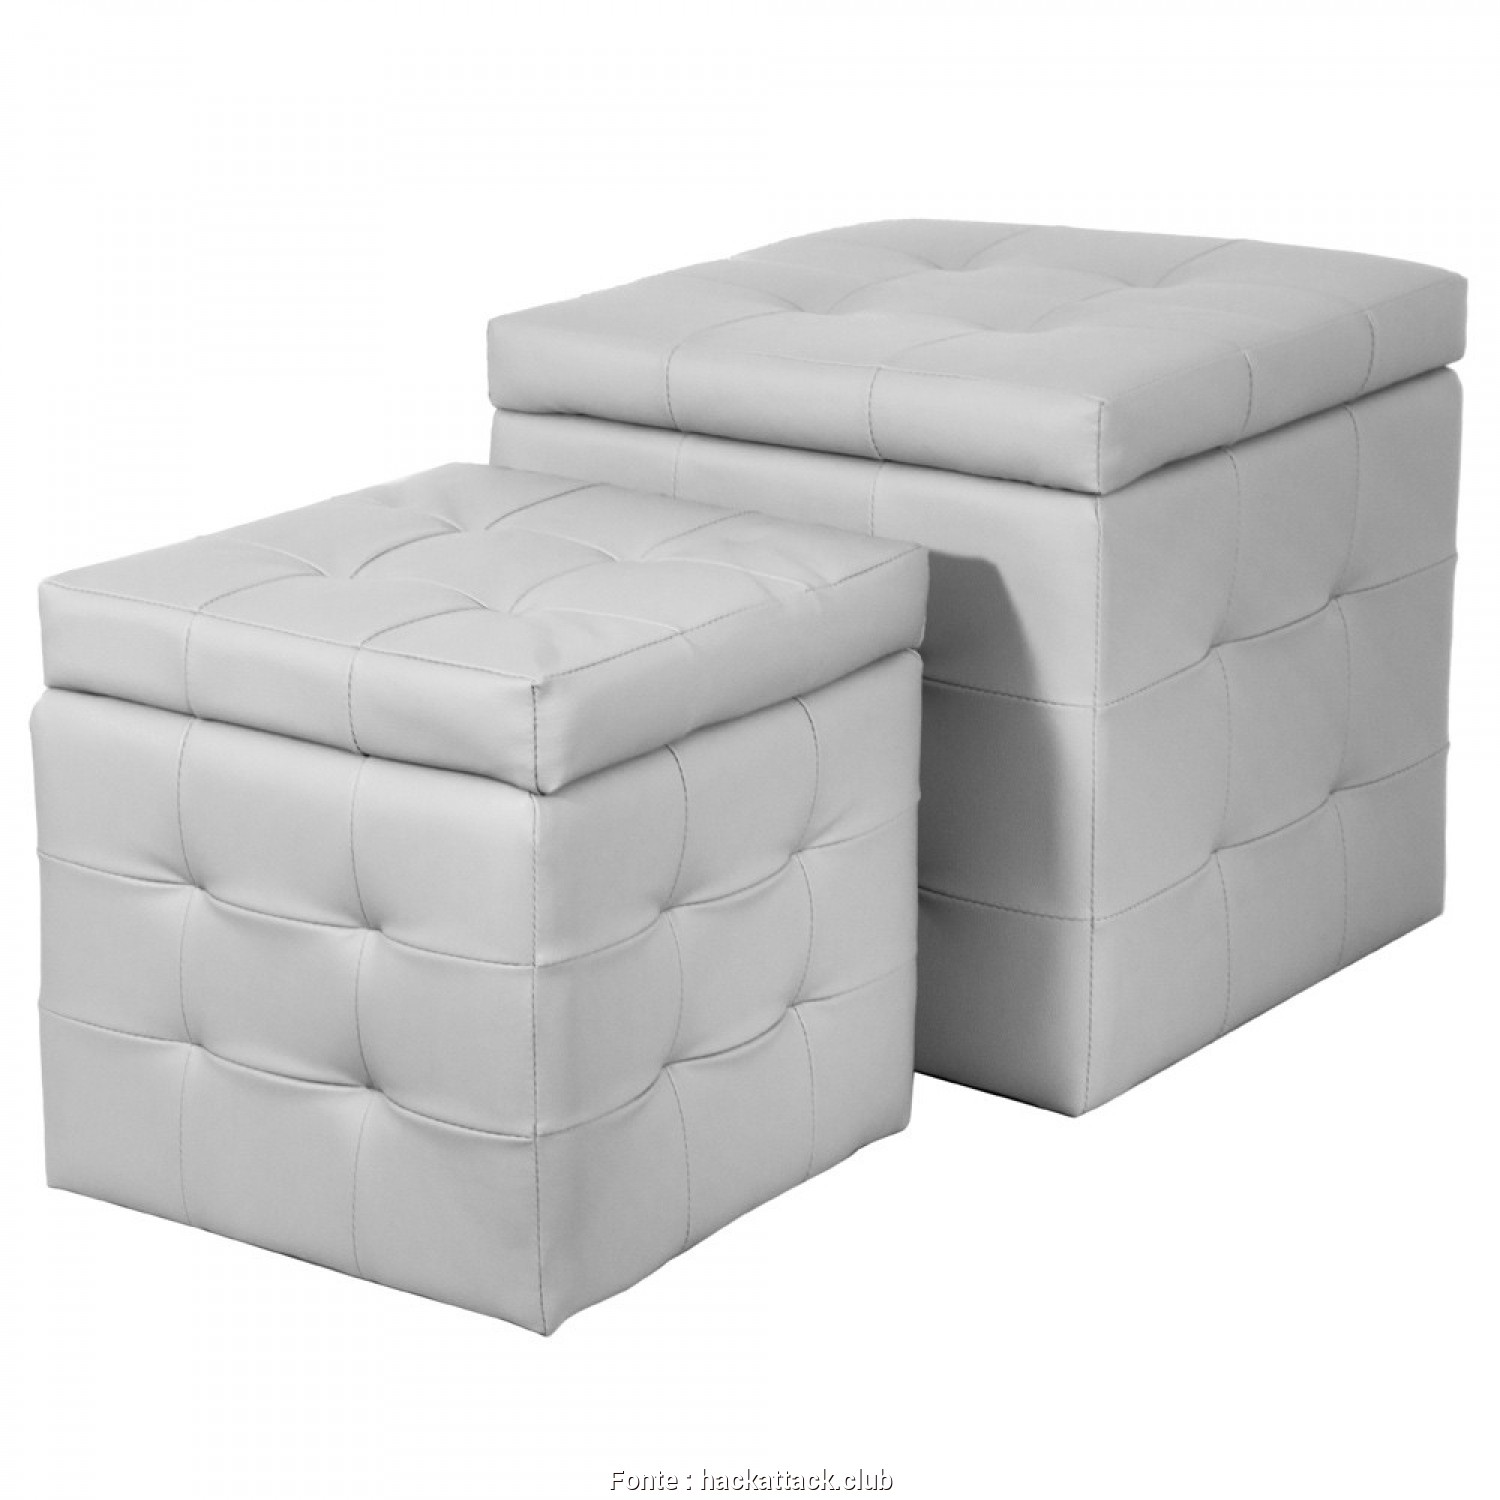 Amabile 6 Pouf Contenitore Ikea Keever For Congress